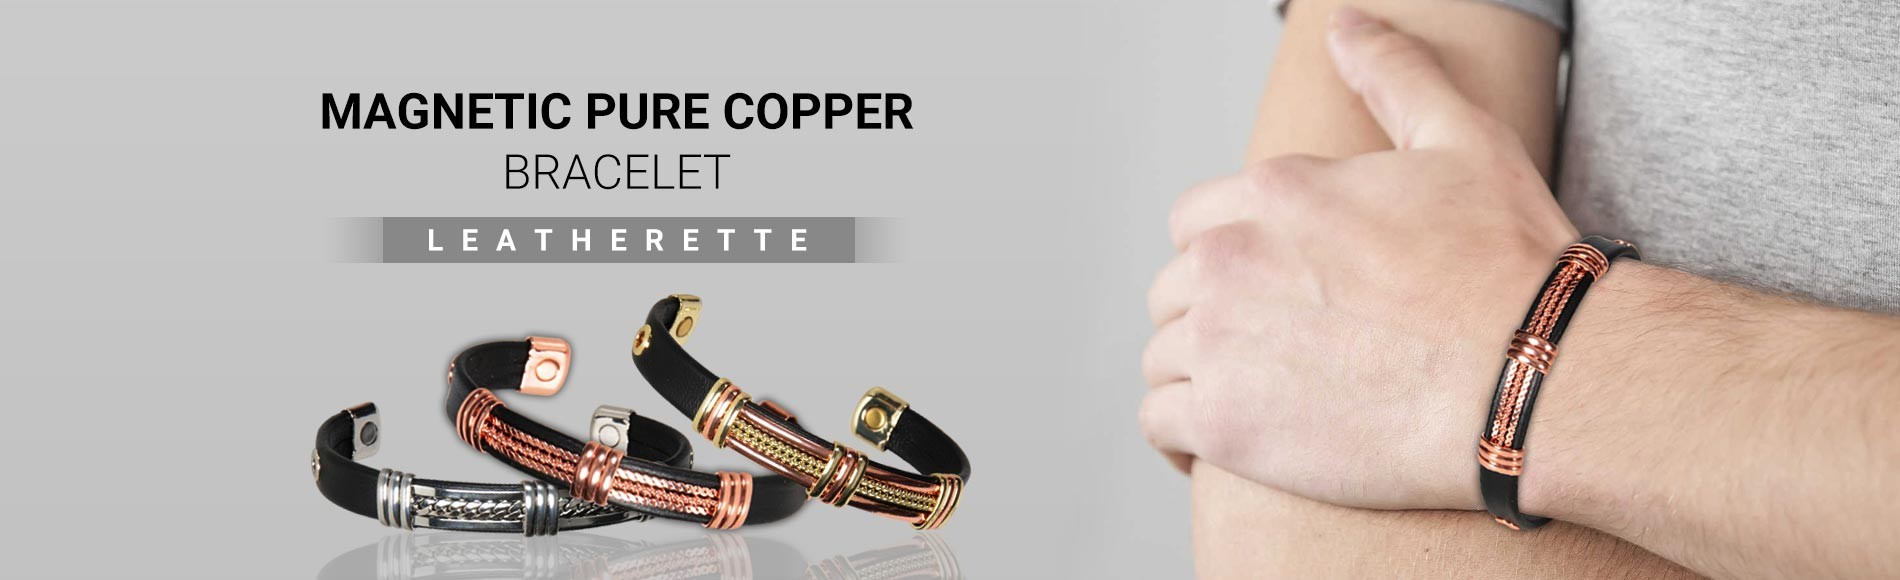 Magnetic Pure Copper Bracelet Leathertte